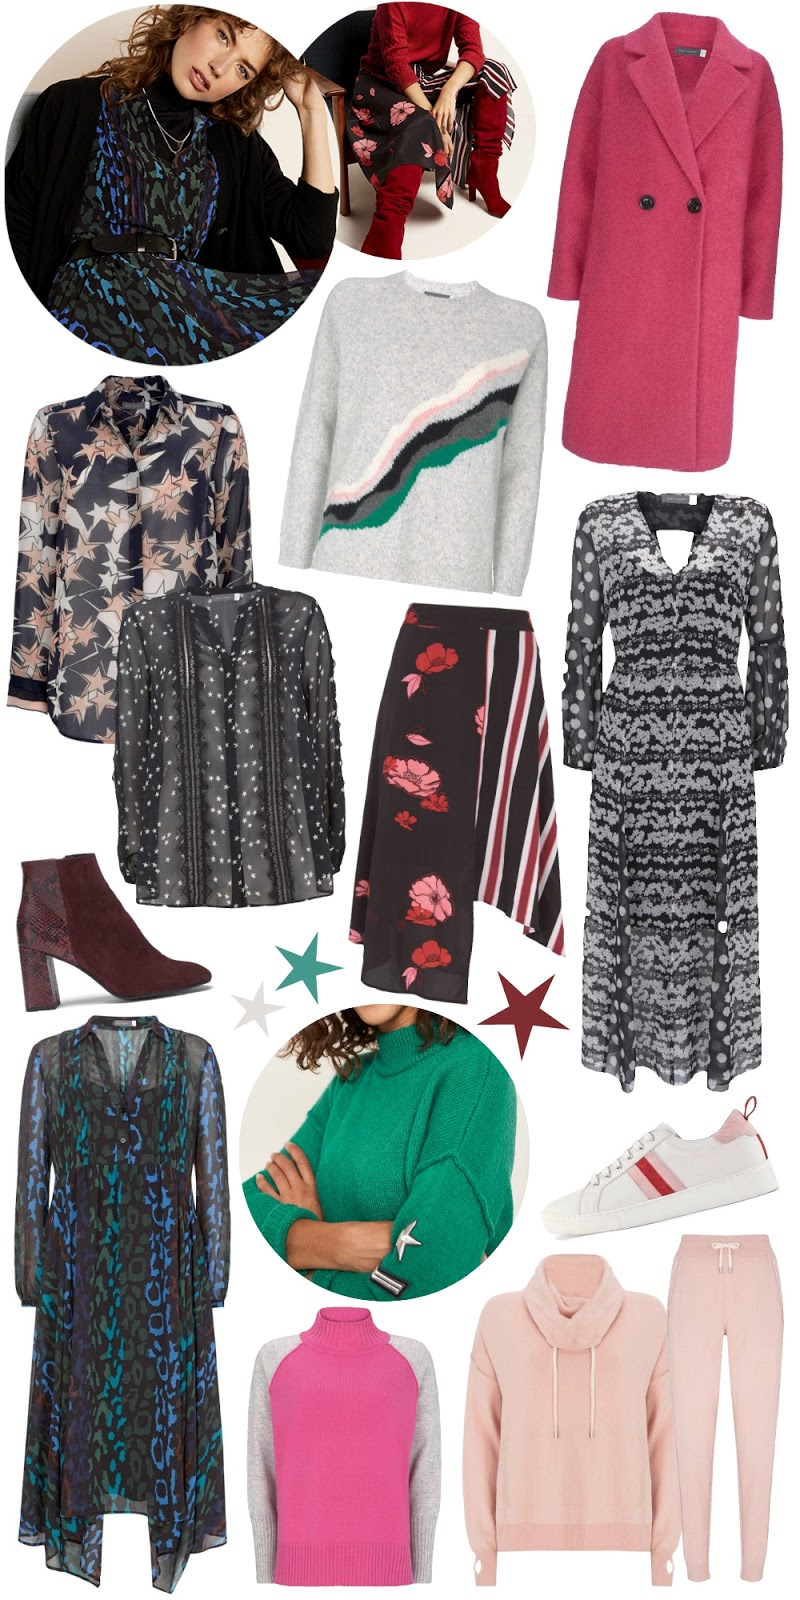 Mint Velvet: My Top Picks for Autumn